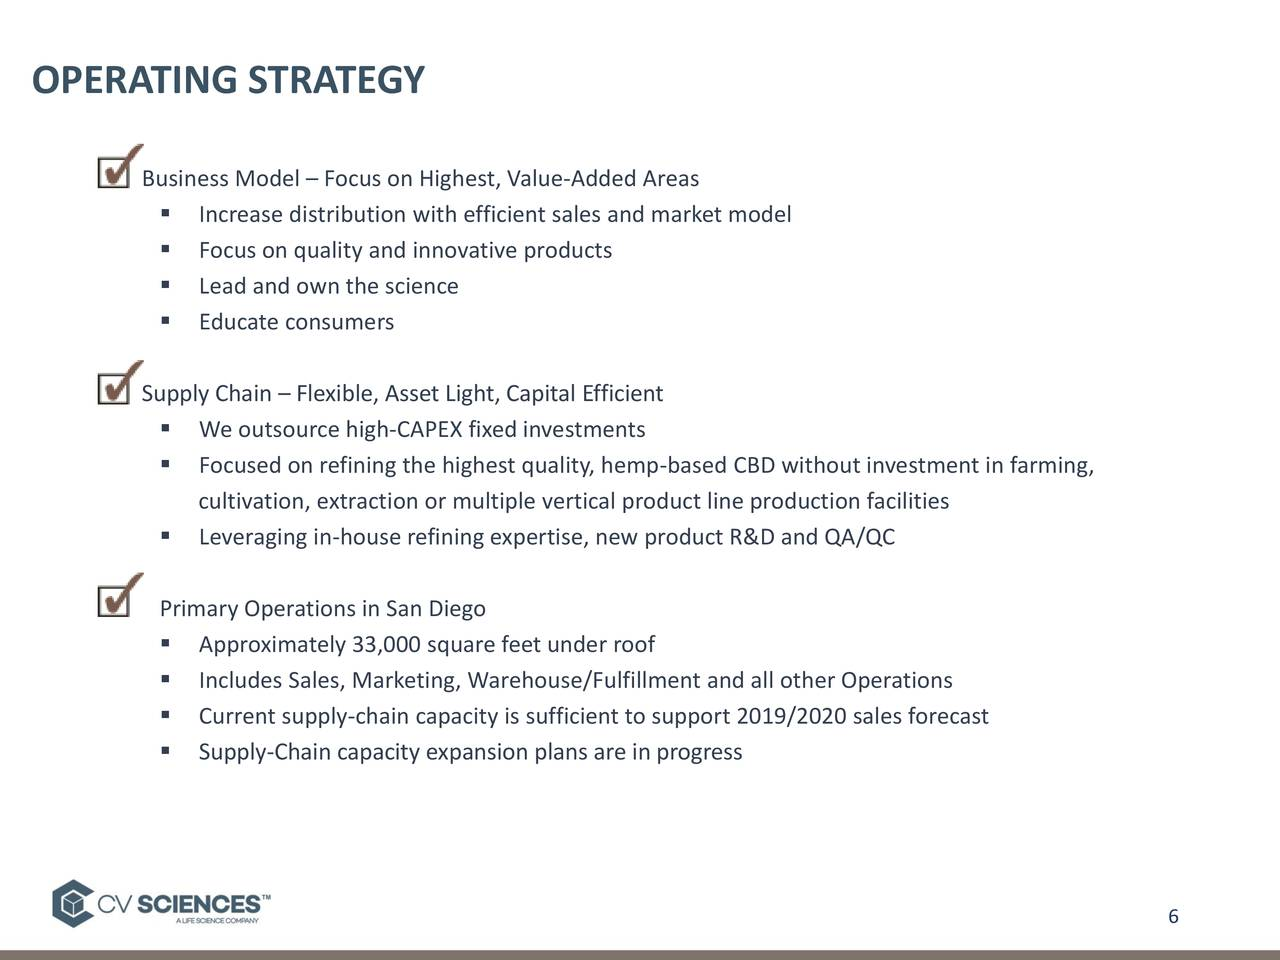 cv sciences  cvsi  investor presentation - slideshow